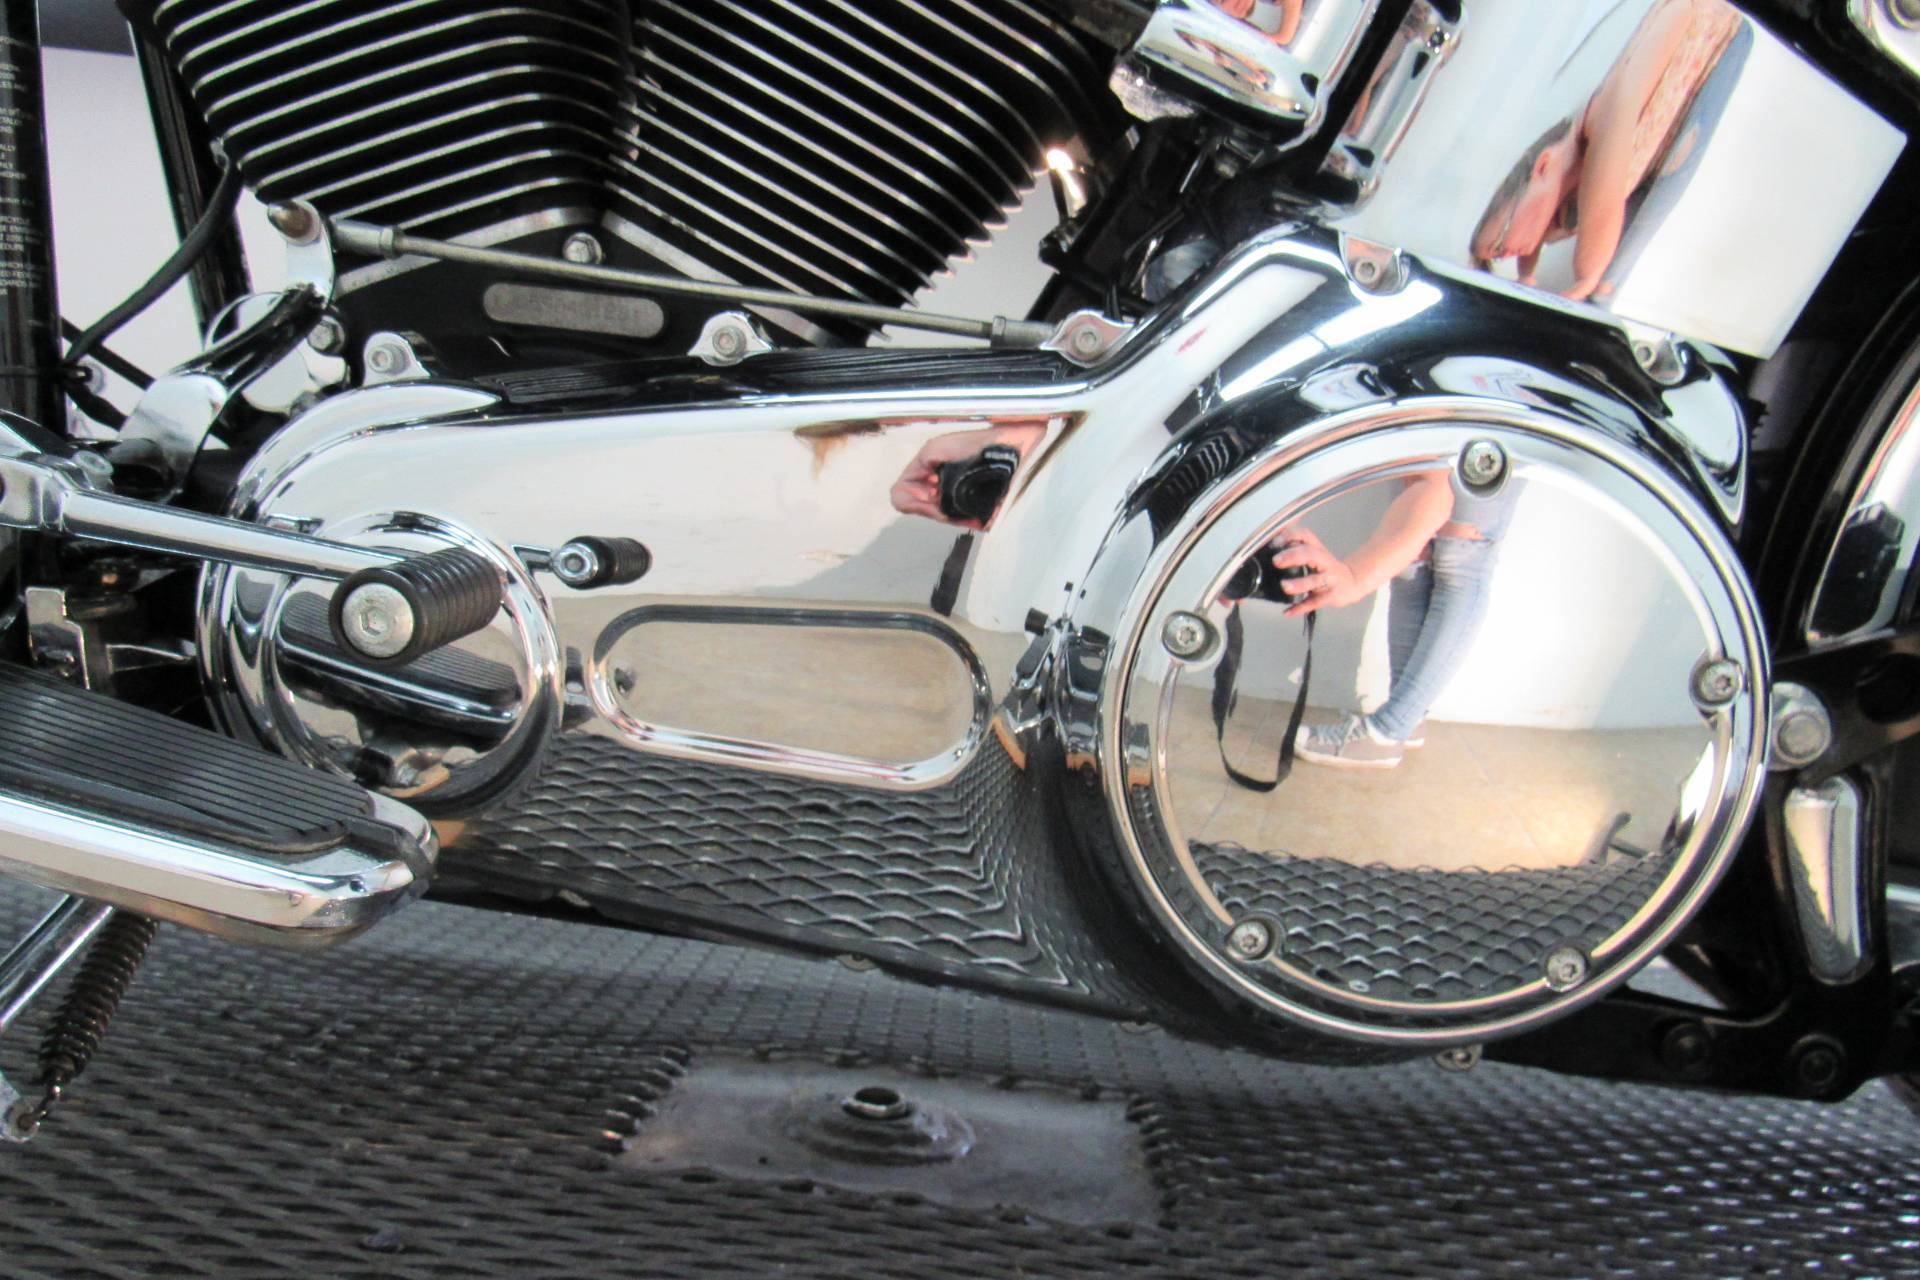 2009 Harley-Davidson Softail Deluxe in Temecula, California - Photo 24